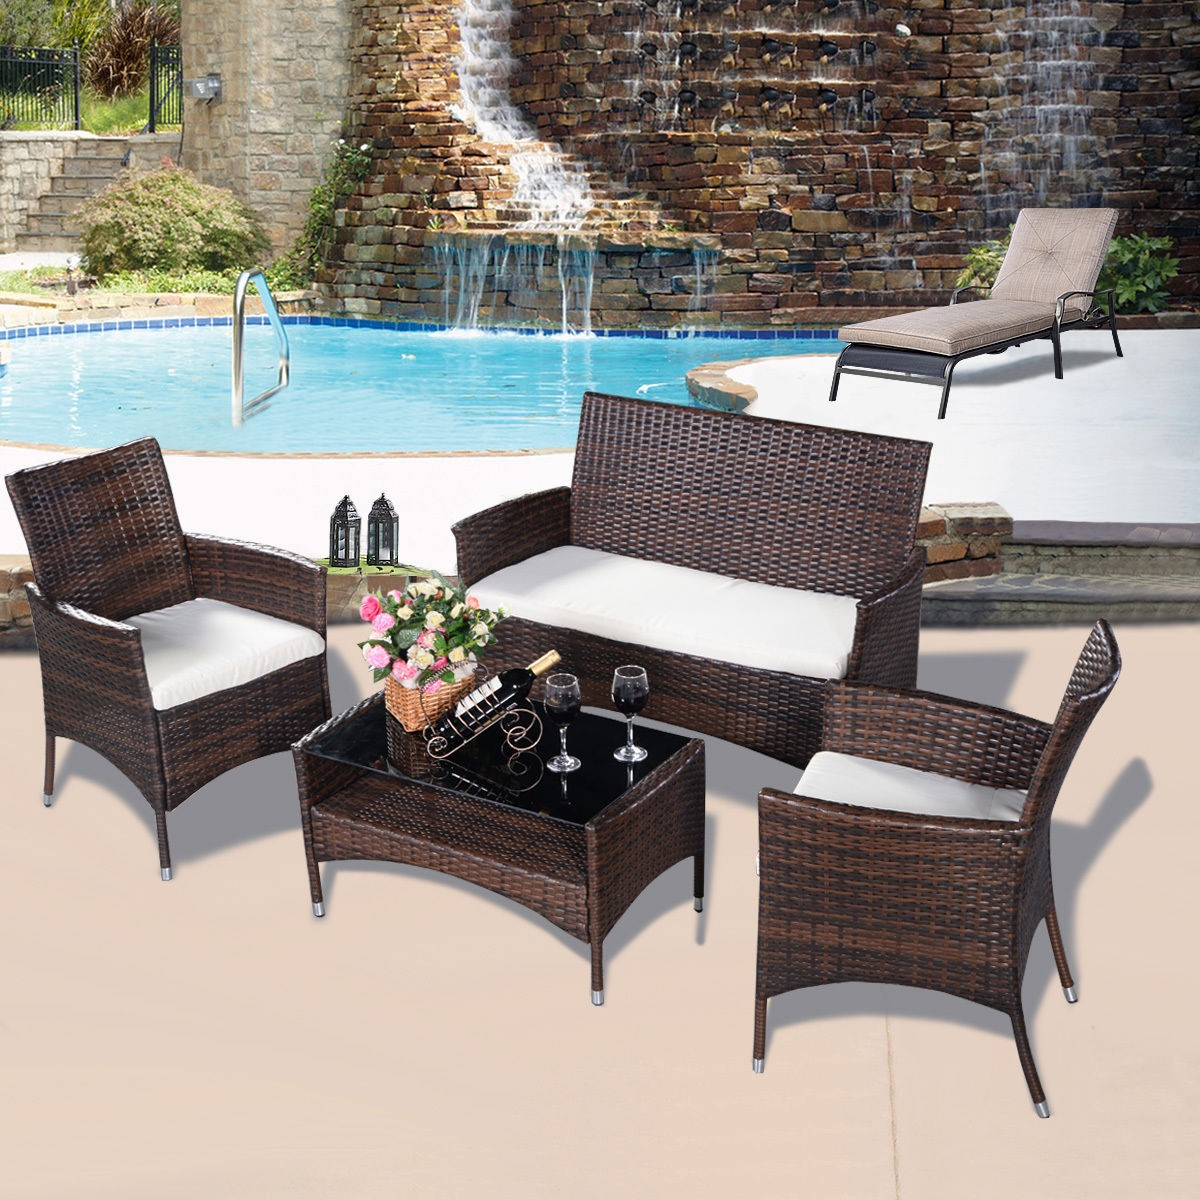 Outdoor Wicker Patio Table And Chairs: 4PCS Outdoor Patio PE Rattan Wicker Table Shelf Sofa